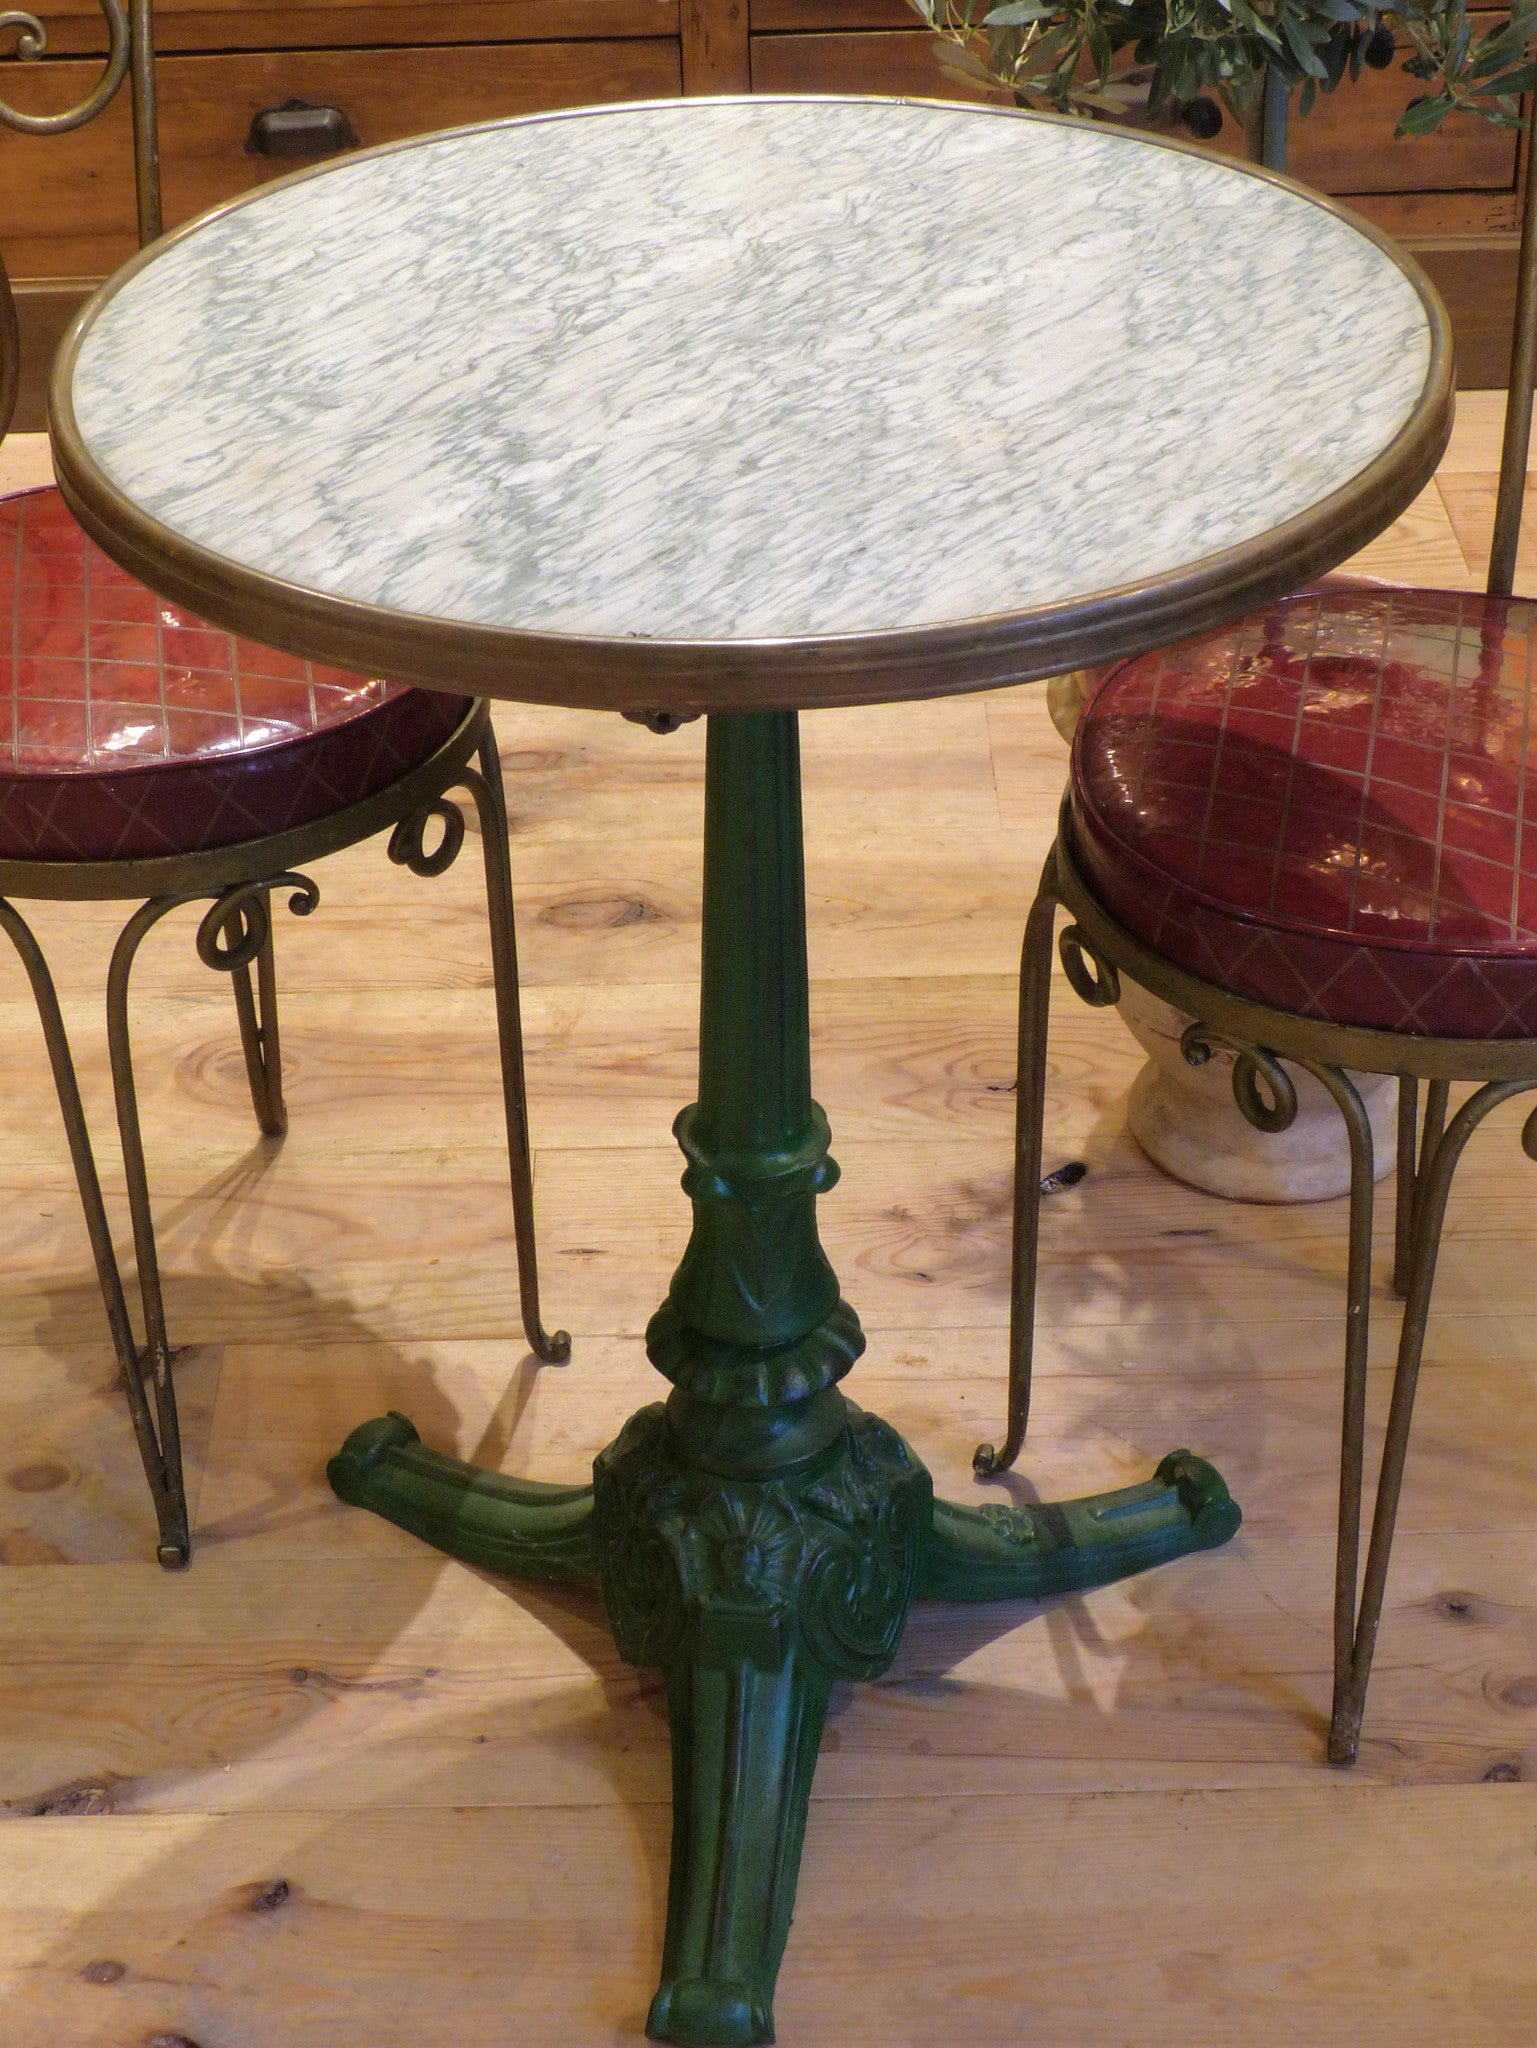 Round marble top bistro table with green stand - Paris